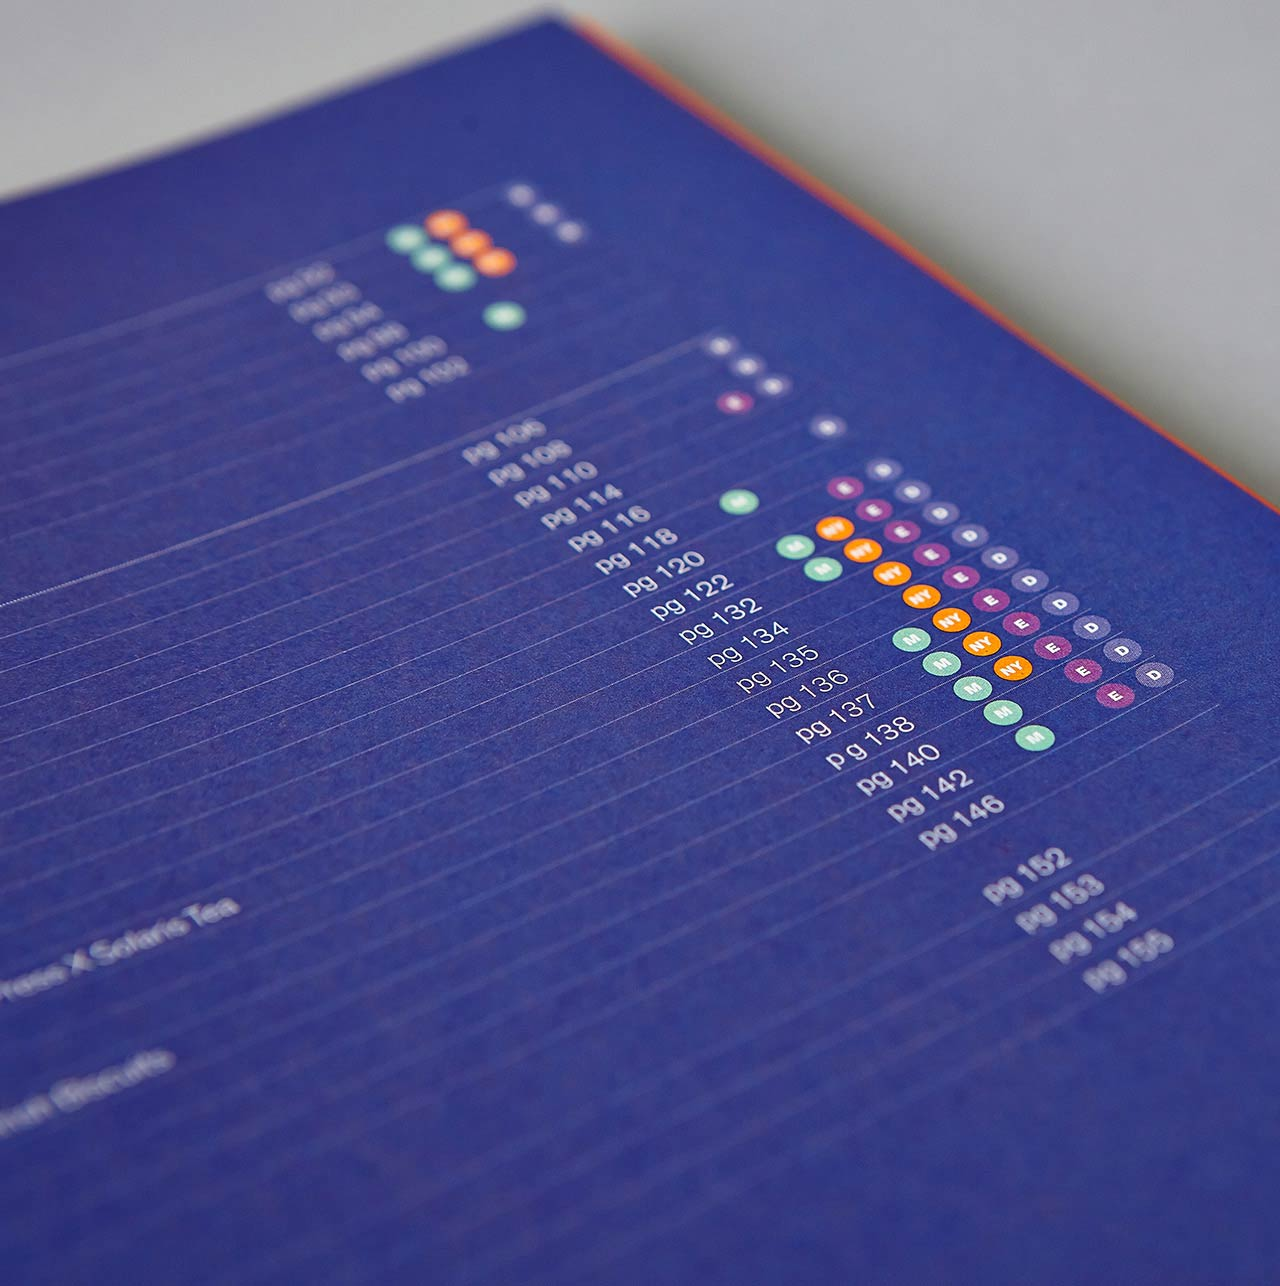 Image of the Liminal Catalogue by New Graphic